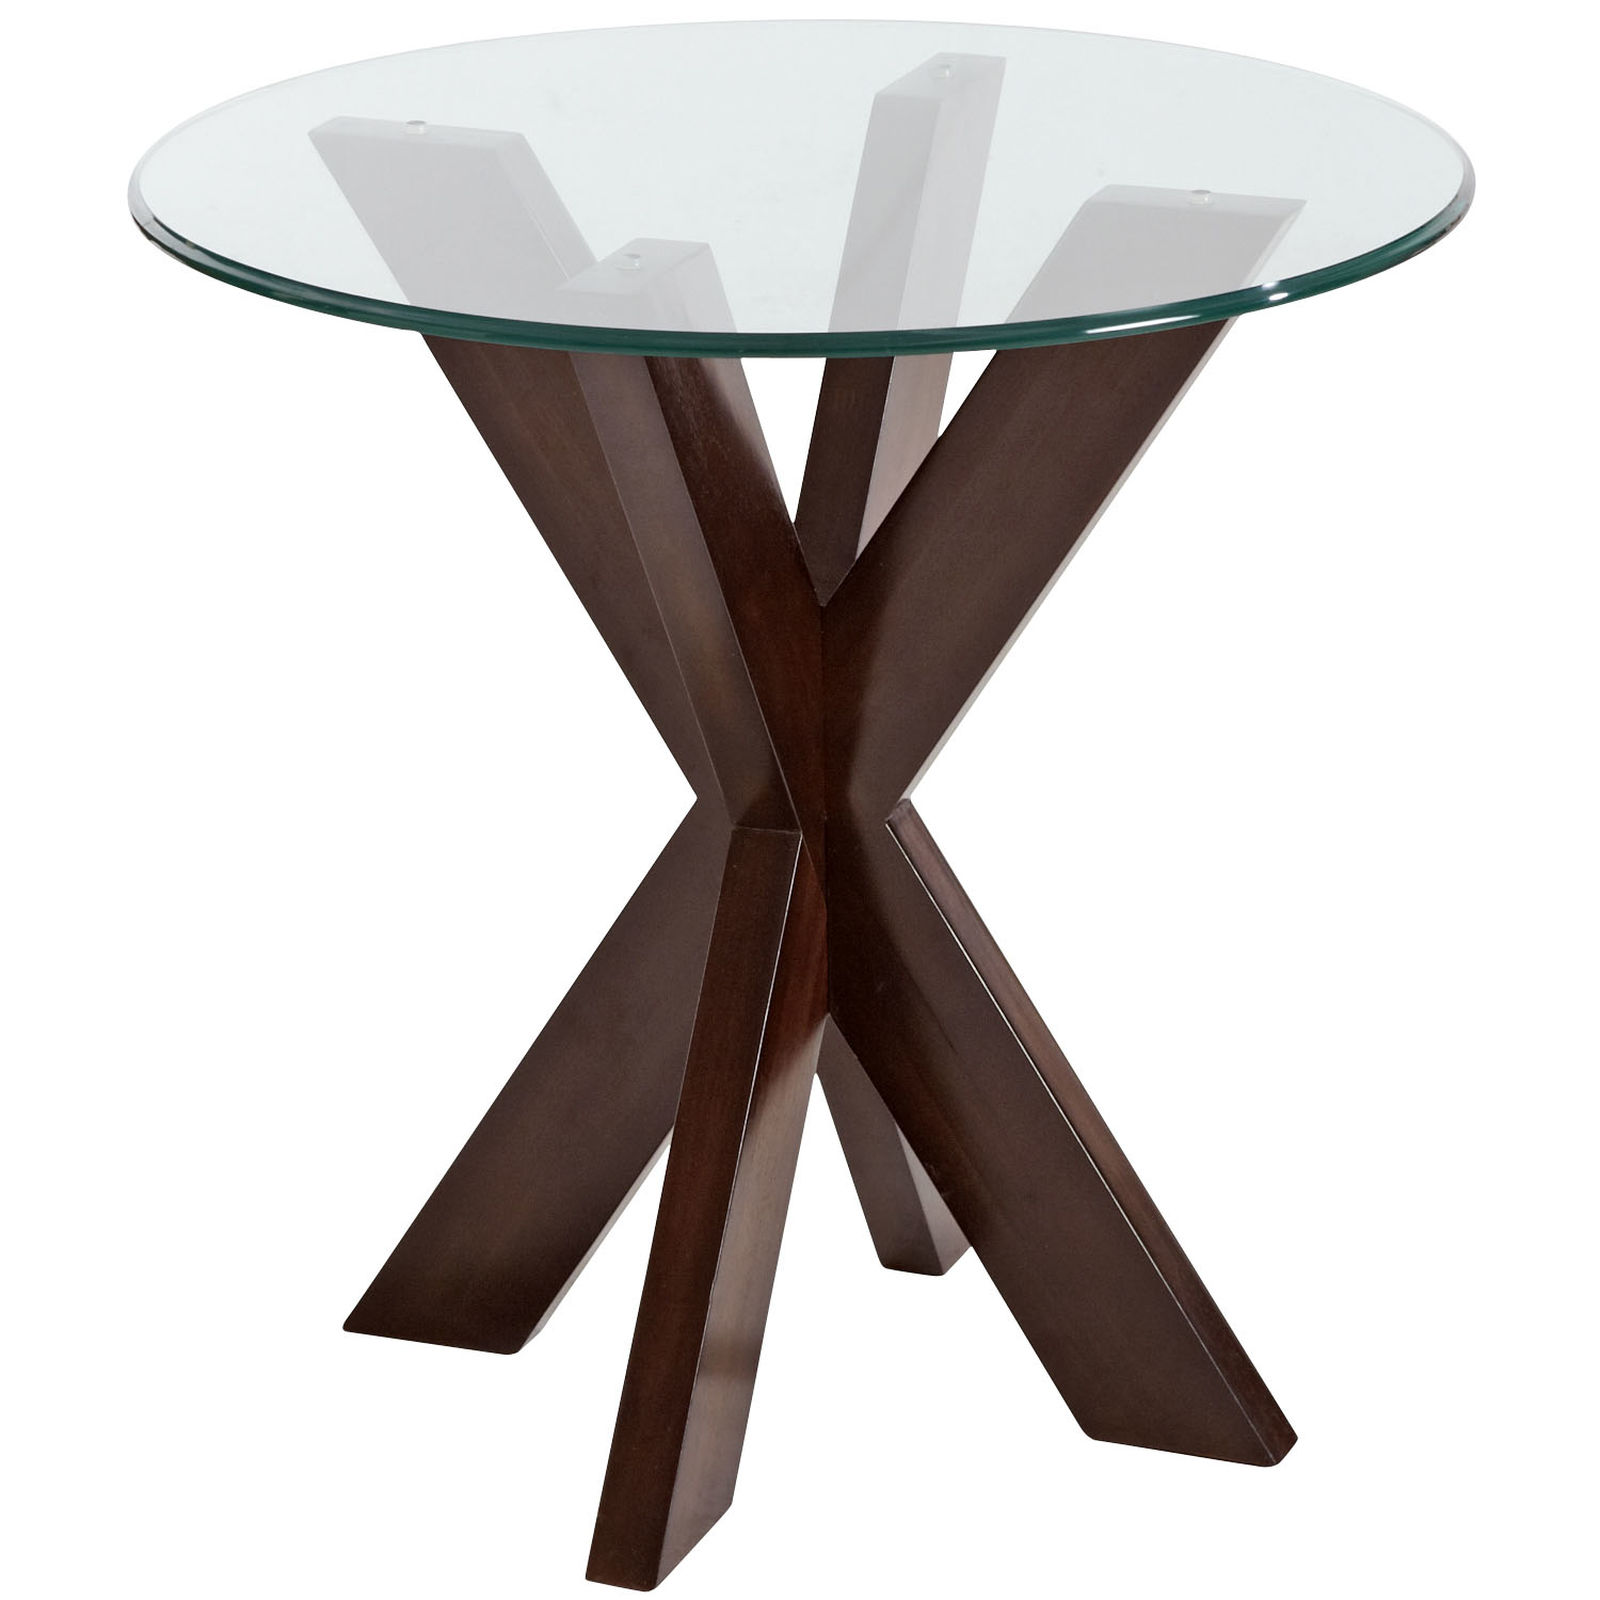 style end table probably perfect amazing pier one glass tables modern espresso luxury simon base round elana bronze iron coffee trendy small for living room skinny black storage